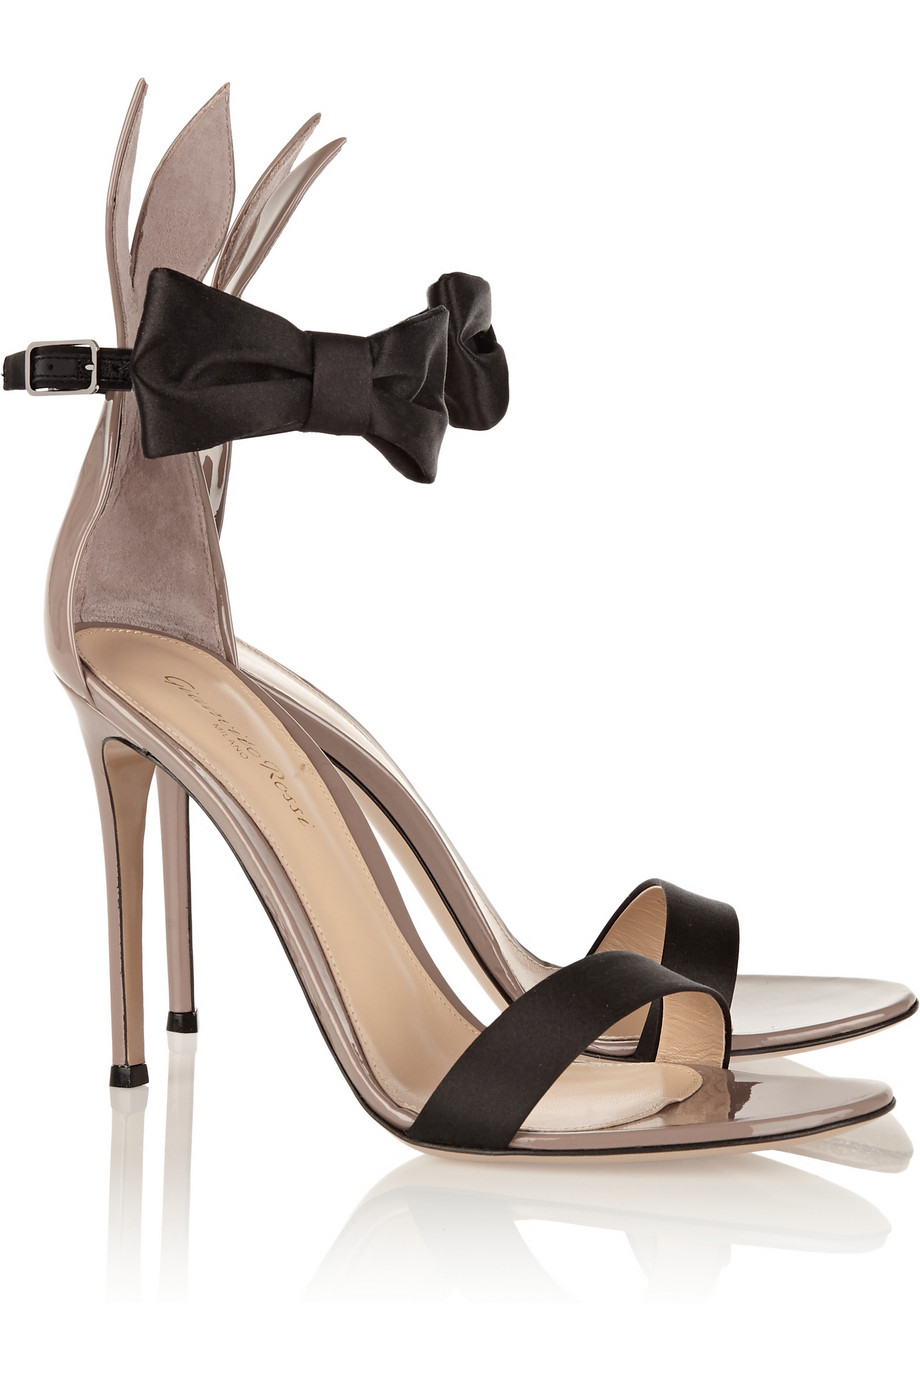 You can purchase these new Gianvito Rossi bunny heels for $980- from  Net-A-Porter